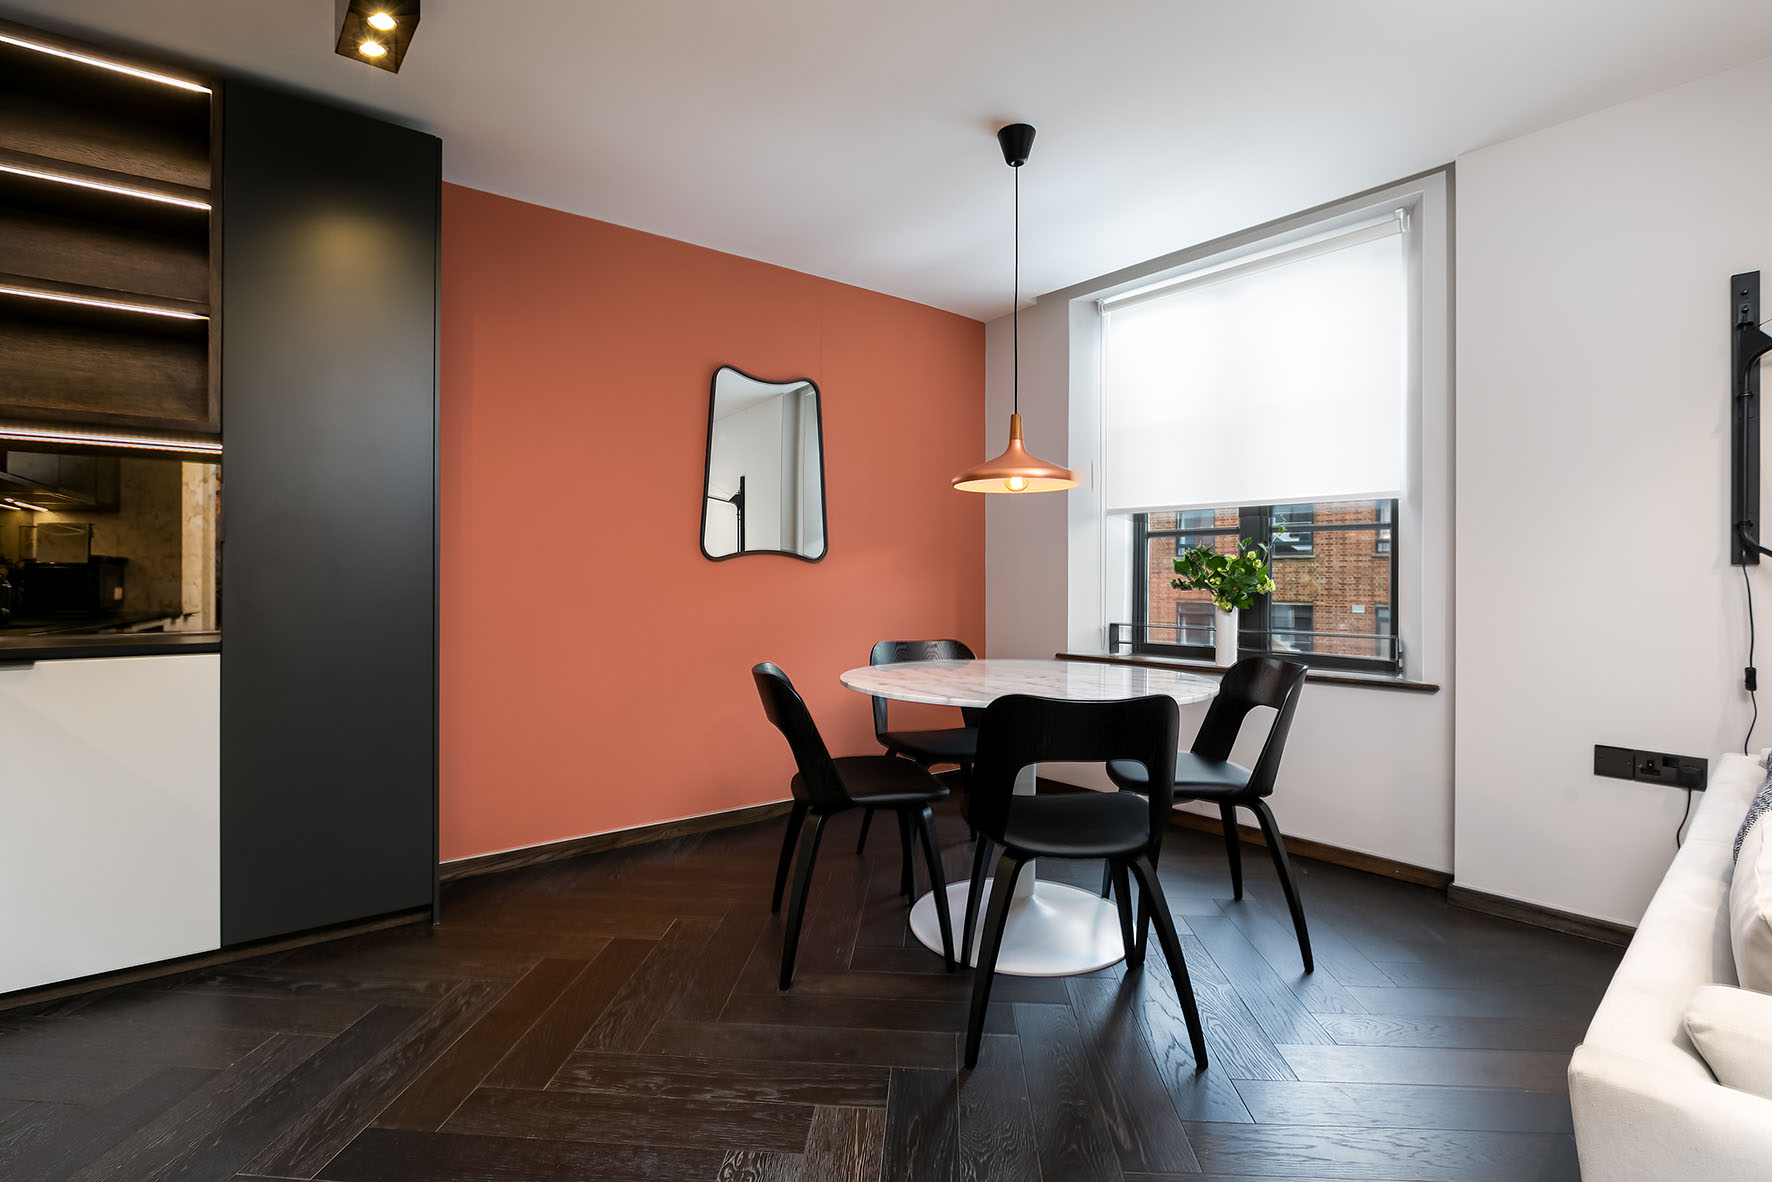 Lovelydays luxury service apartment rental - London - Soho - Noel Street VII - Lovelysuite - 1 bedrooms - 1 bathrooms - Luxury living room - f69cee95ad88 - Lovelydays